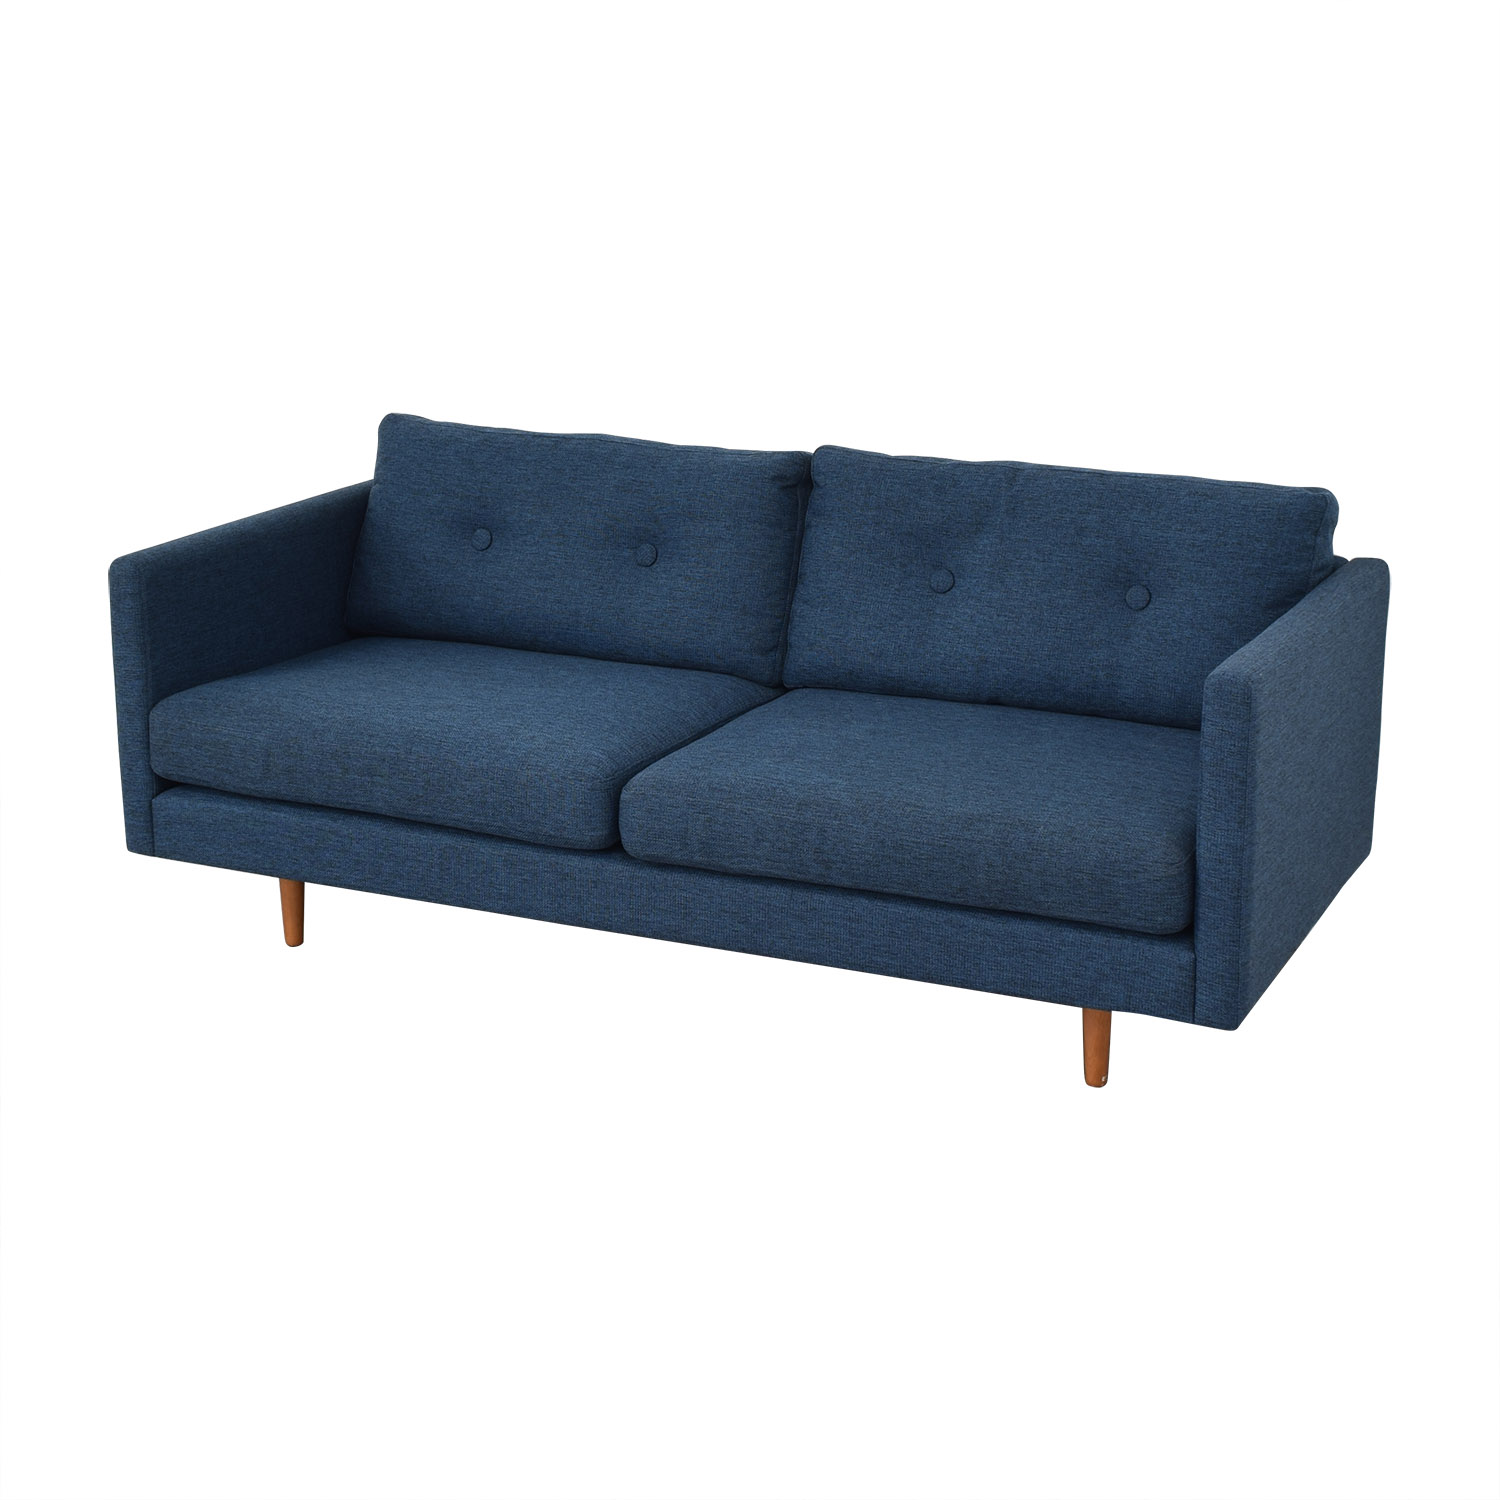 shop Article Article Anton Sofa online